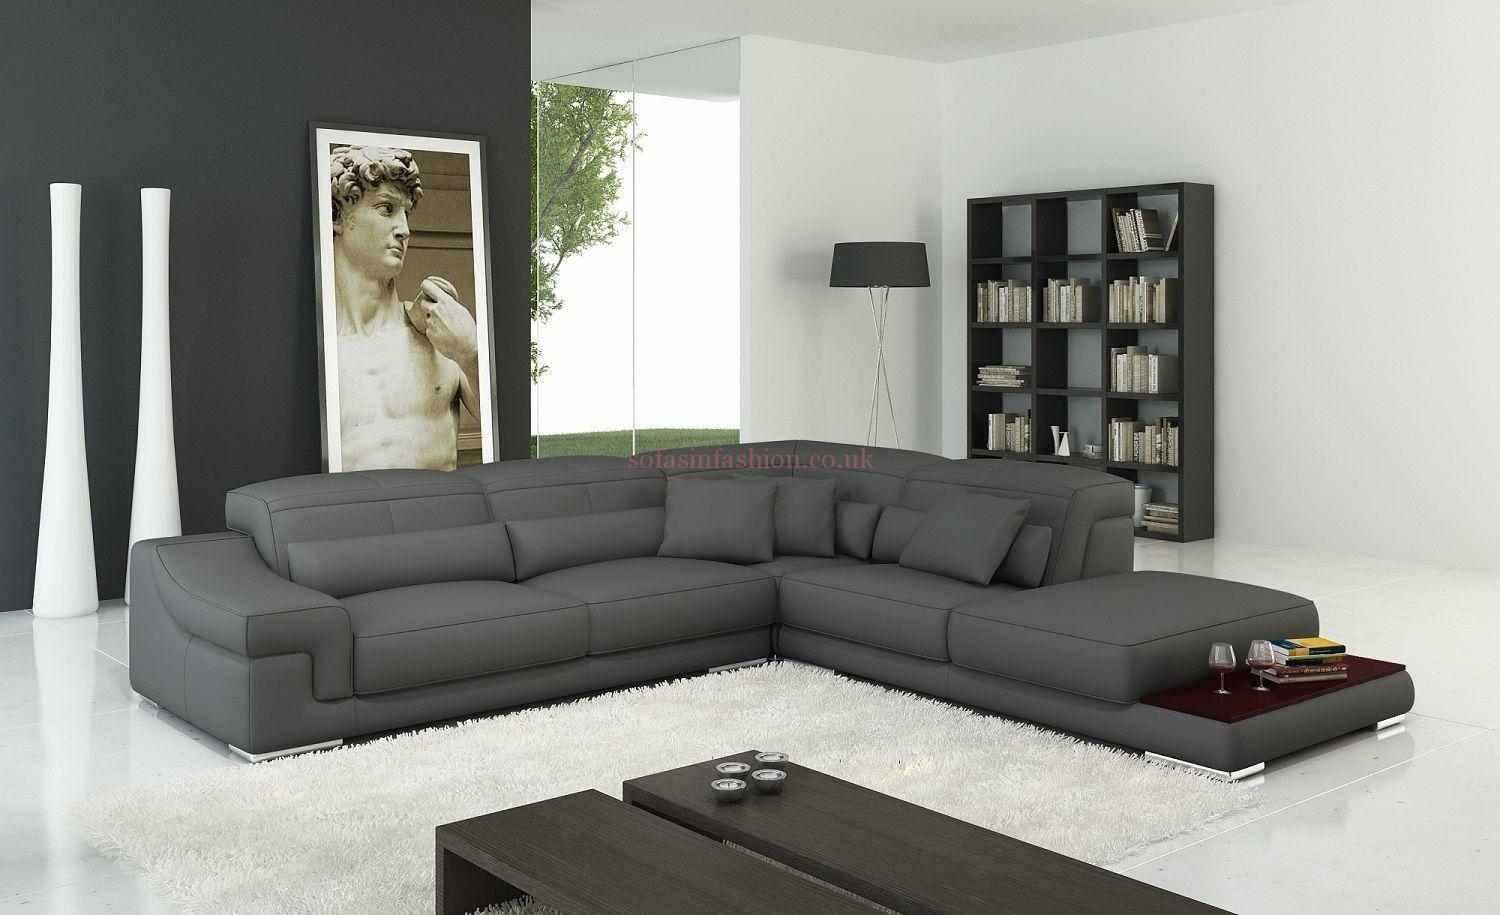 Elegant Leather Corner Sofa Fast Cheapest Viagra Prices Get An Inside Very Large Sofas (Image 12 of 20)